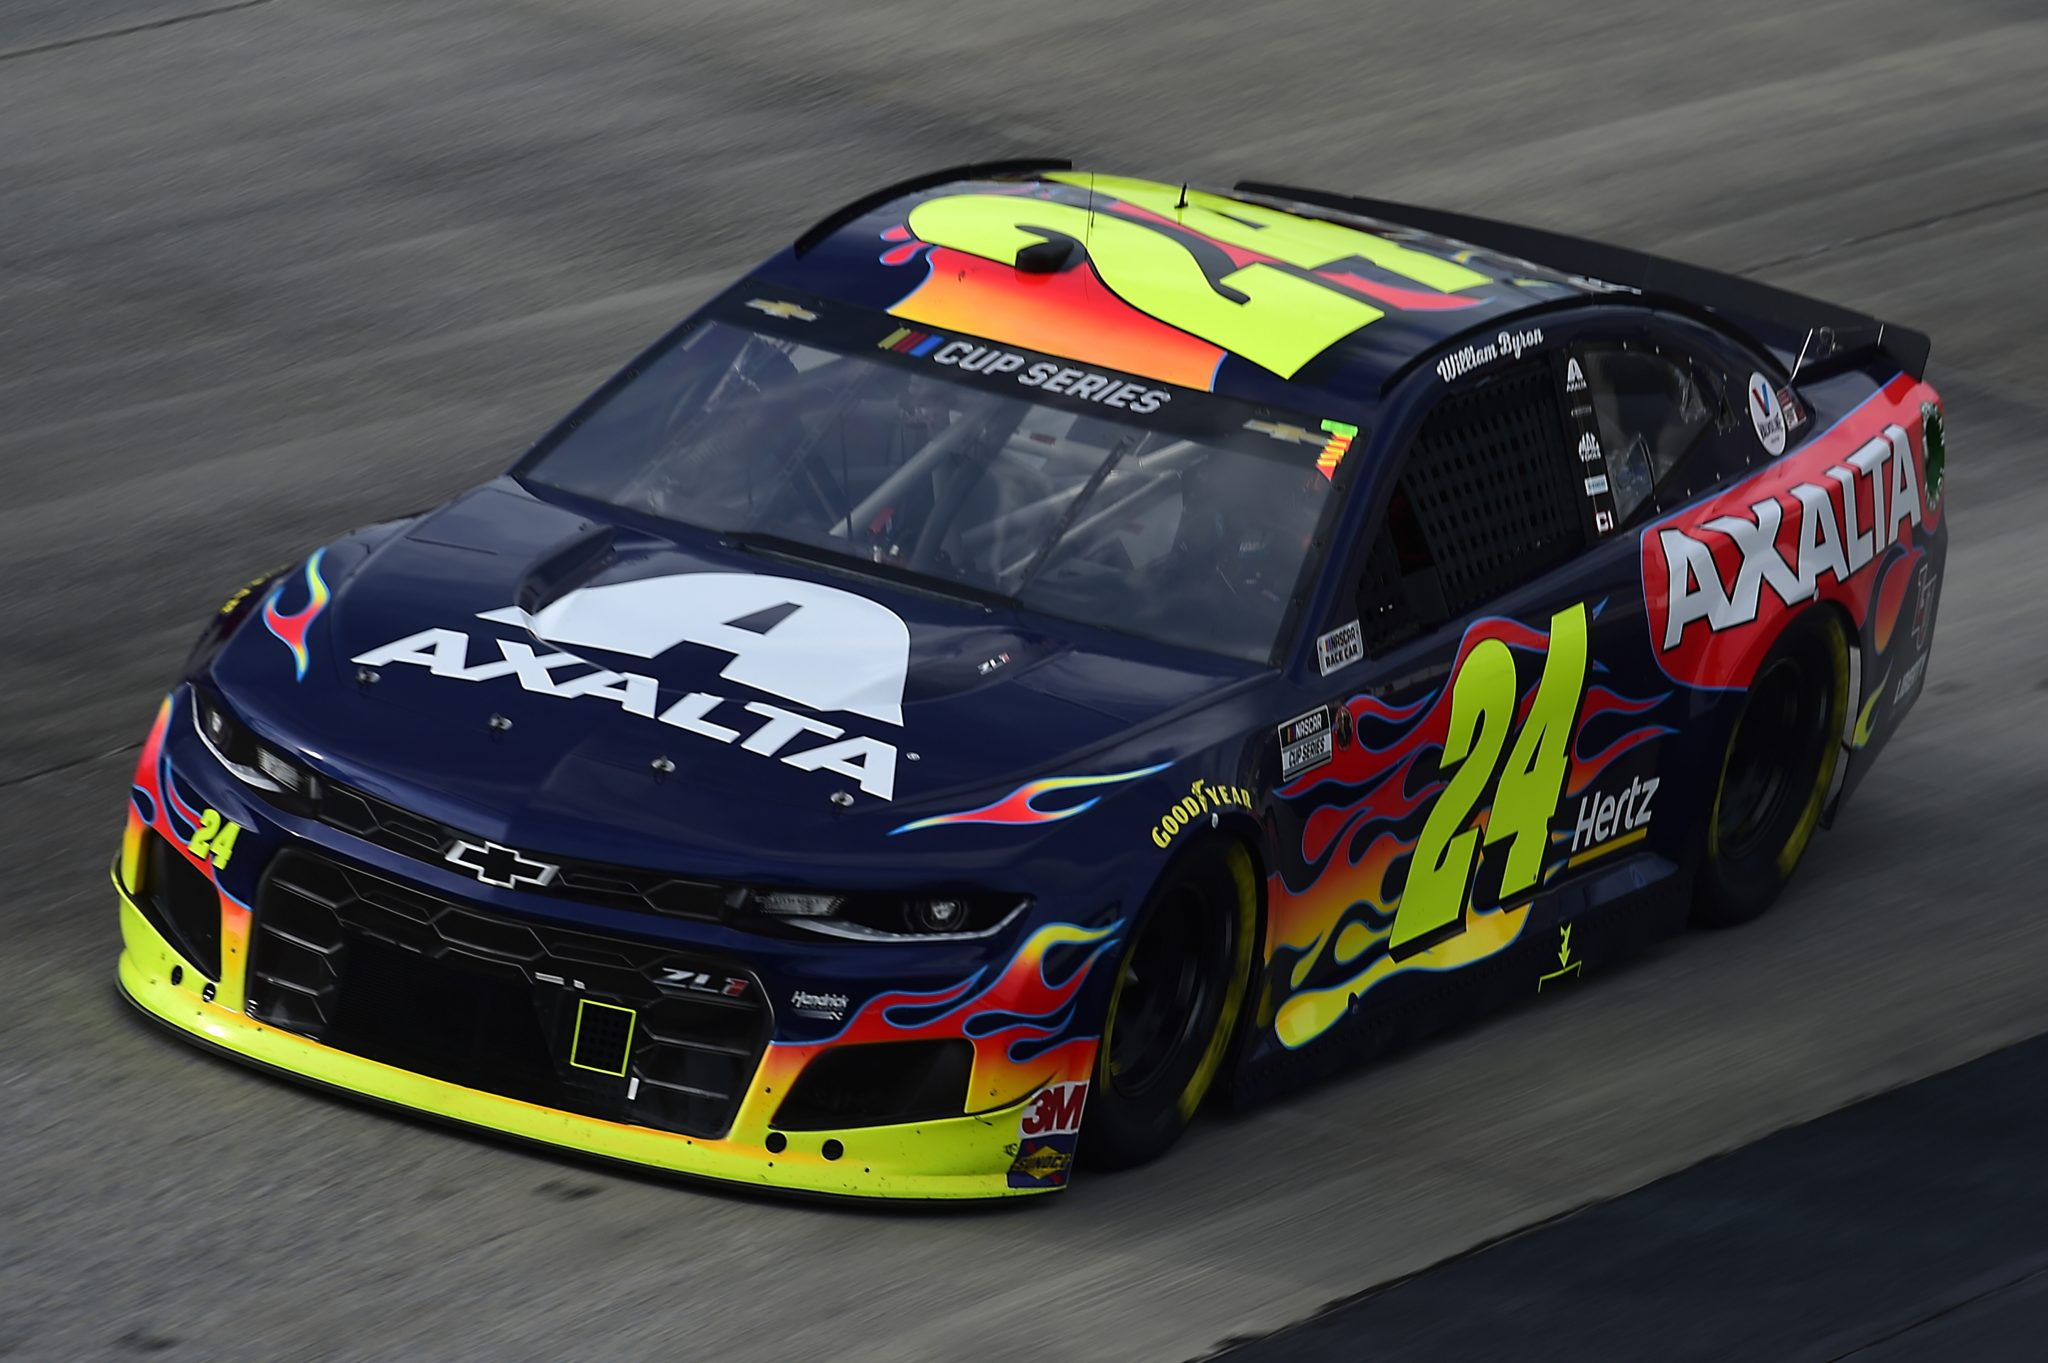 DOVER, DELAWARE - AUGUST 22: William Byron, driver of the #24 Axalta Chevrolet, drives during the NASCAR Cup Series Drydene 311 at Dover International Speedway on August 22, 2020 in Dover, Delaware. (Photo by Jared C. Tilton/Getty Images) | Getty Images